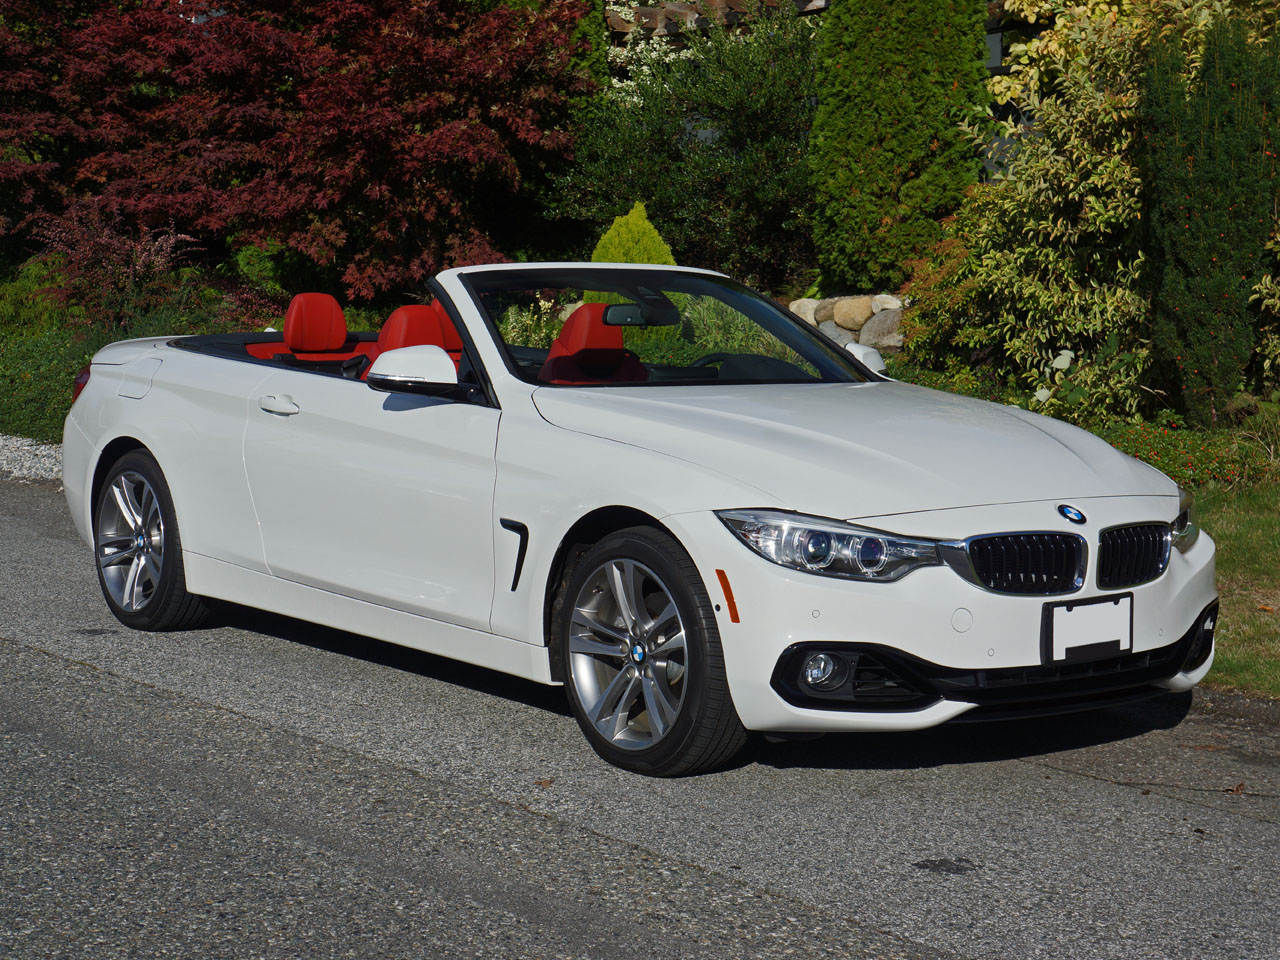 BMW I XDrive Cabriolet Road Test Review CarCostCanada - 428i bmw convertible